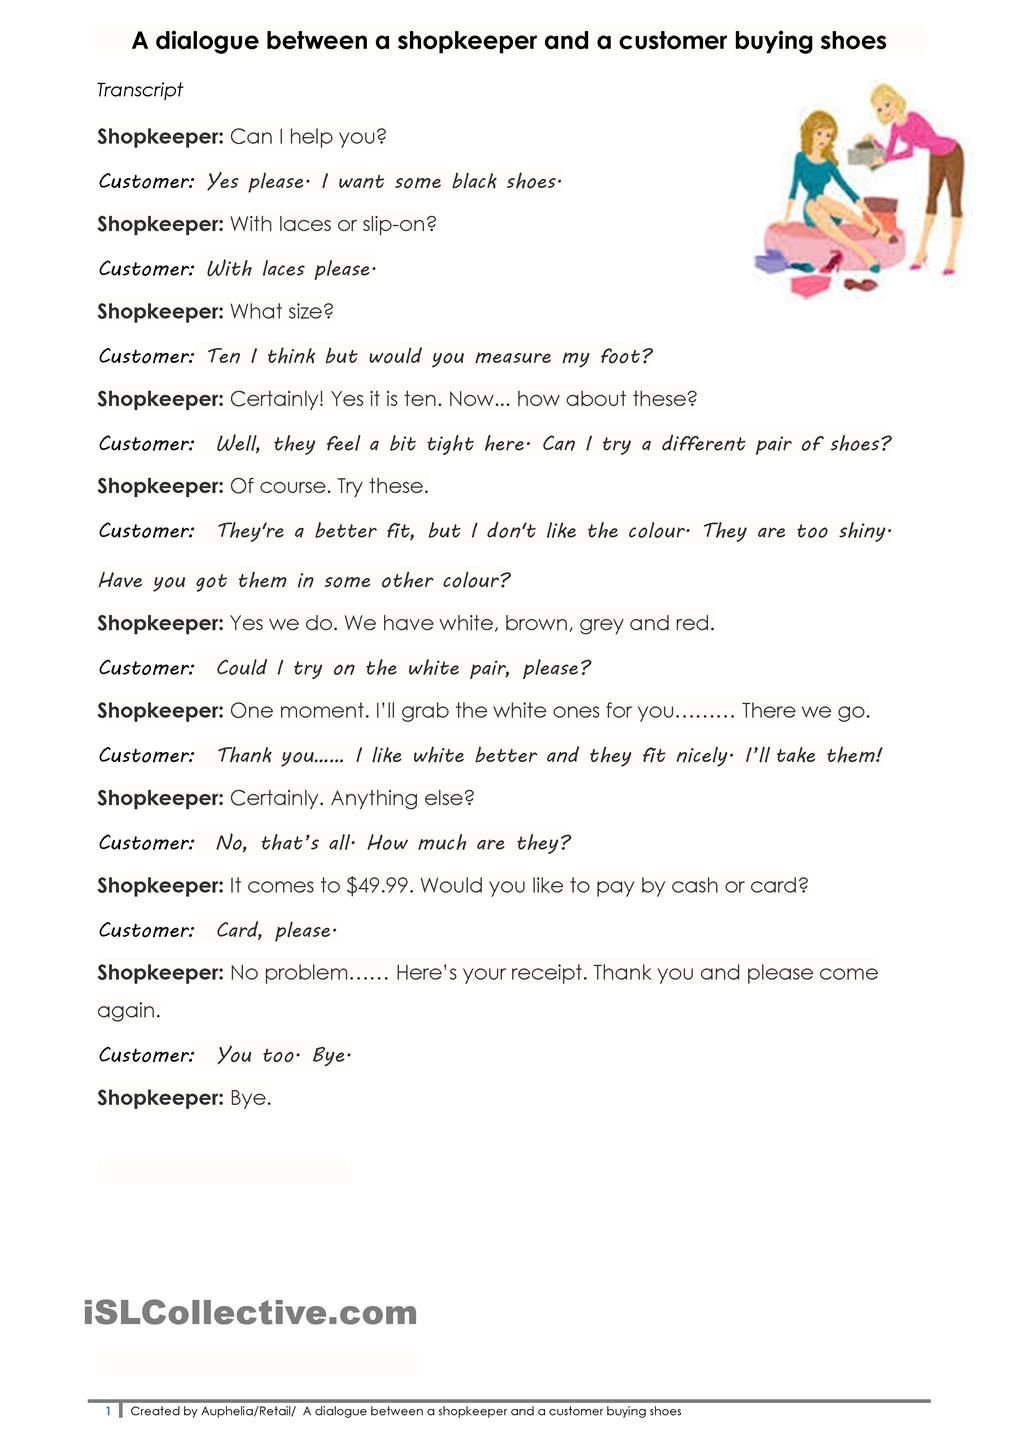 Worksheets Writing Dialogue Worksheet pin by dora tomich on language matters pinterest worksheets a dialogue between shopkeeper and customer buying shoes worksheet free esl printable made teachers